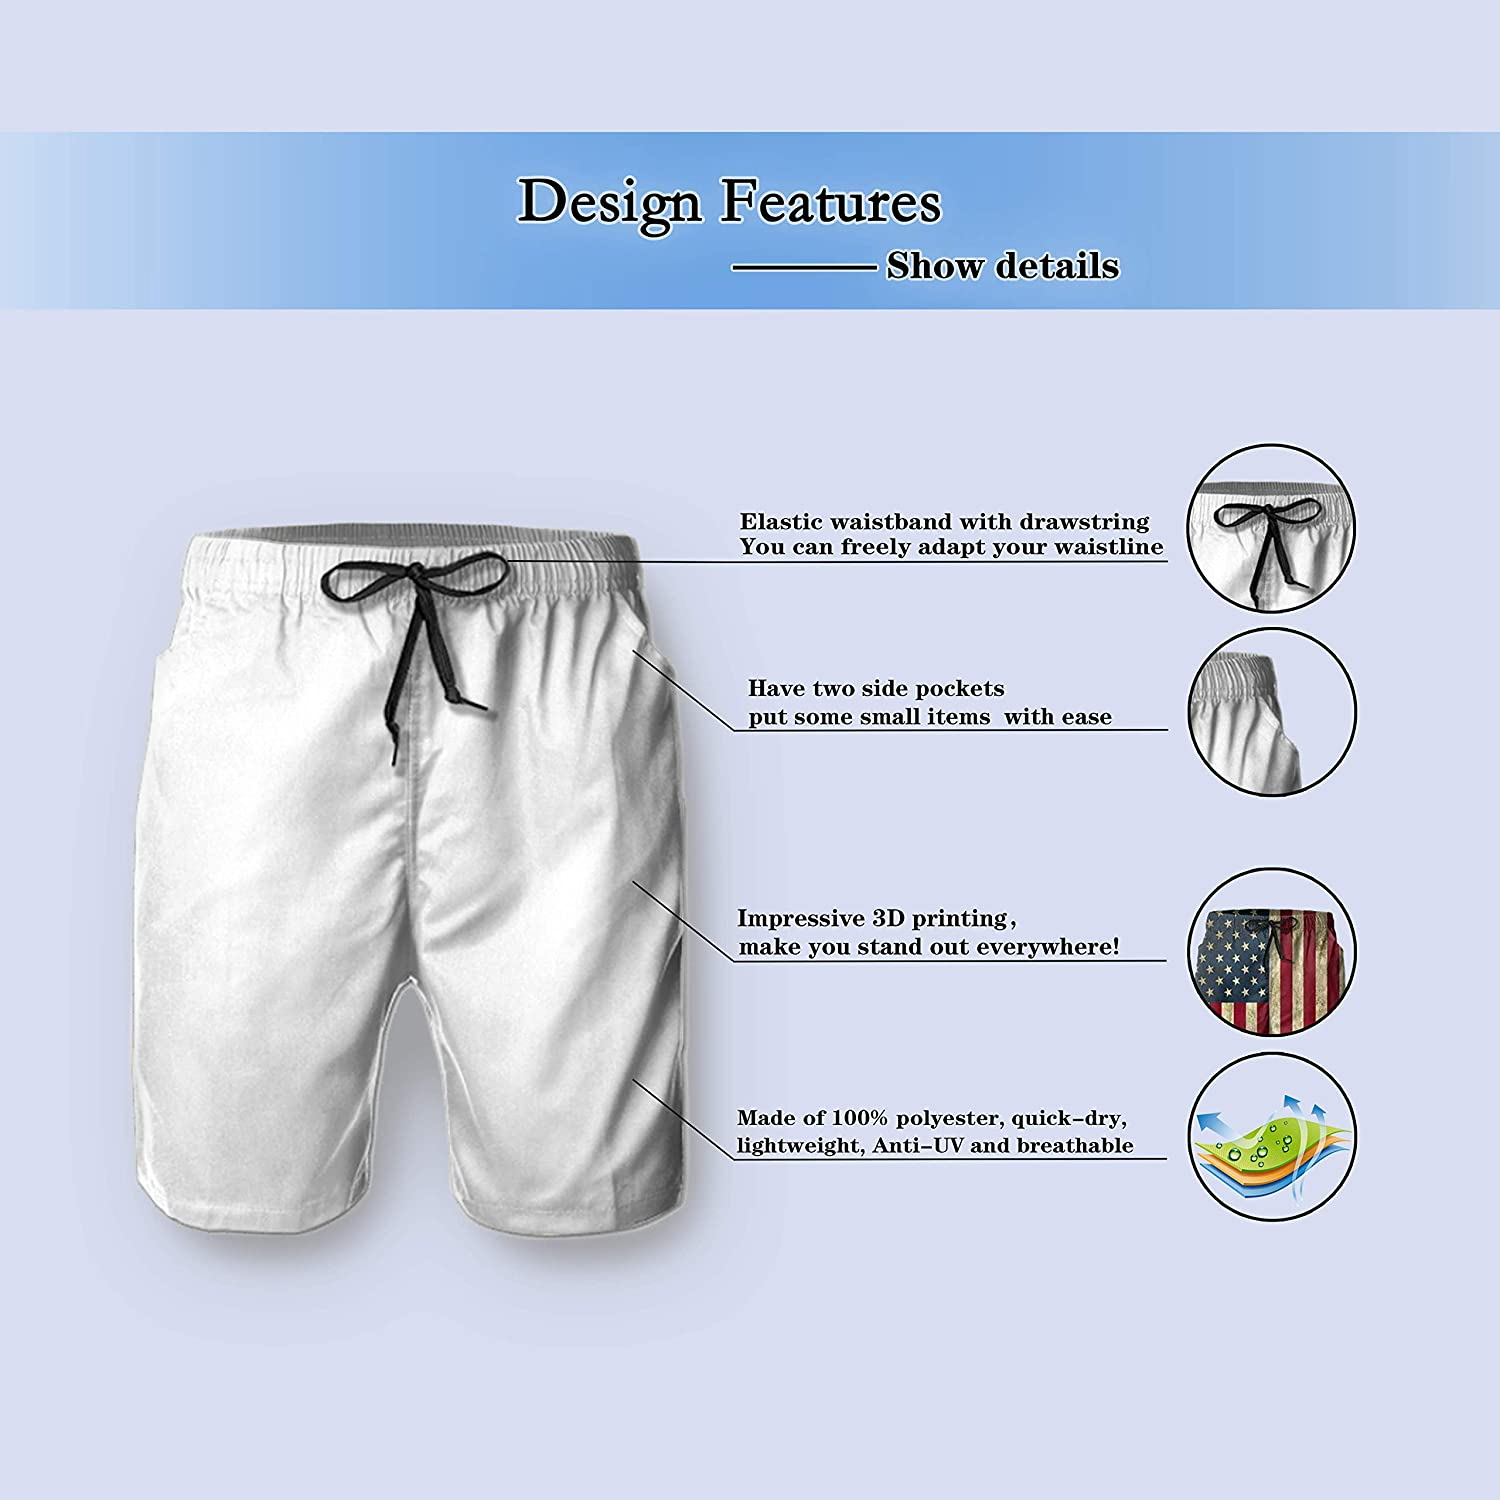 Classic Casual Fit Toomny Men Shorts Comfortable Stretch /¨C Everyday Essential/¨C Shorts/¨C Summer Beach ShortsXL